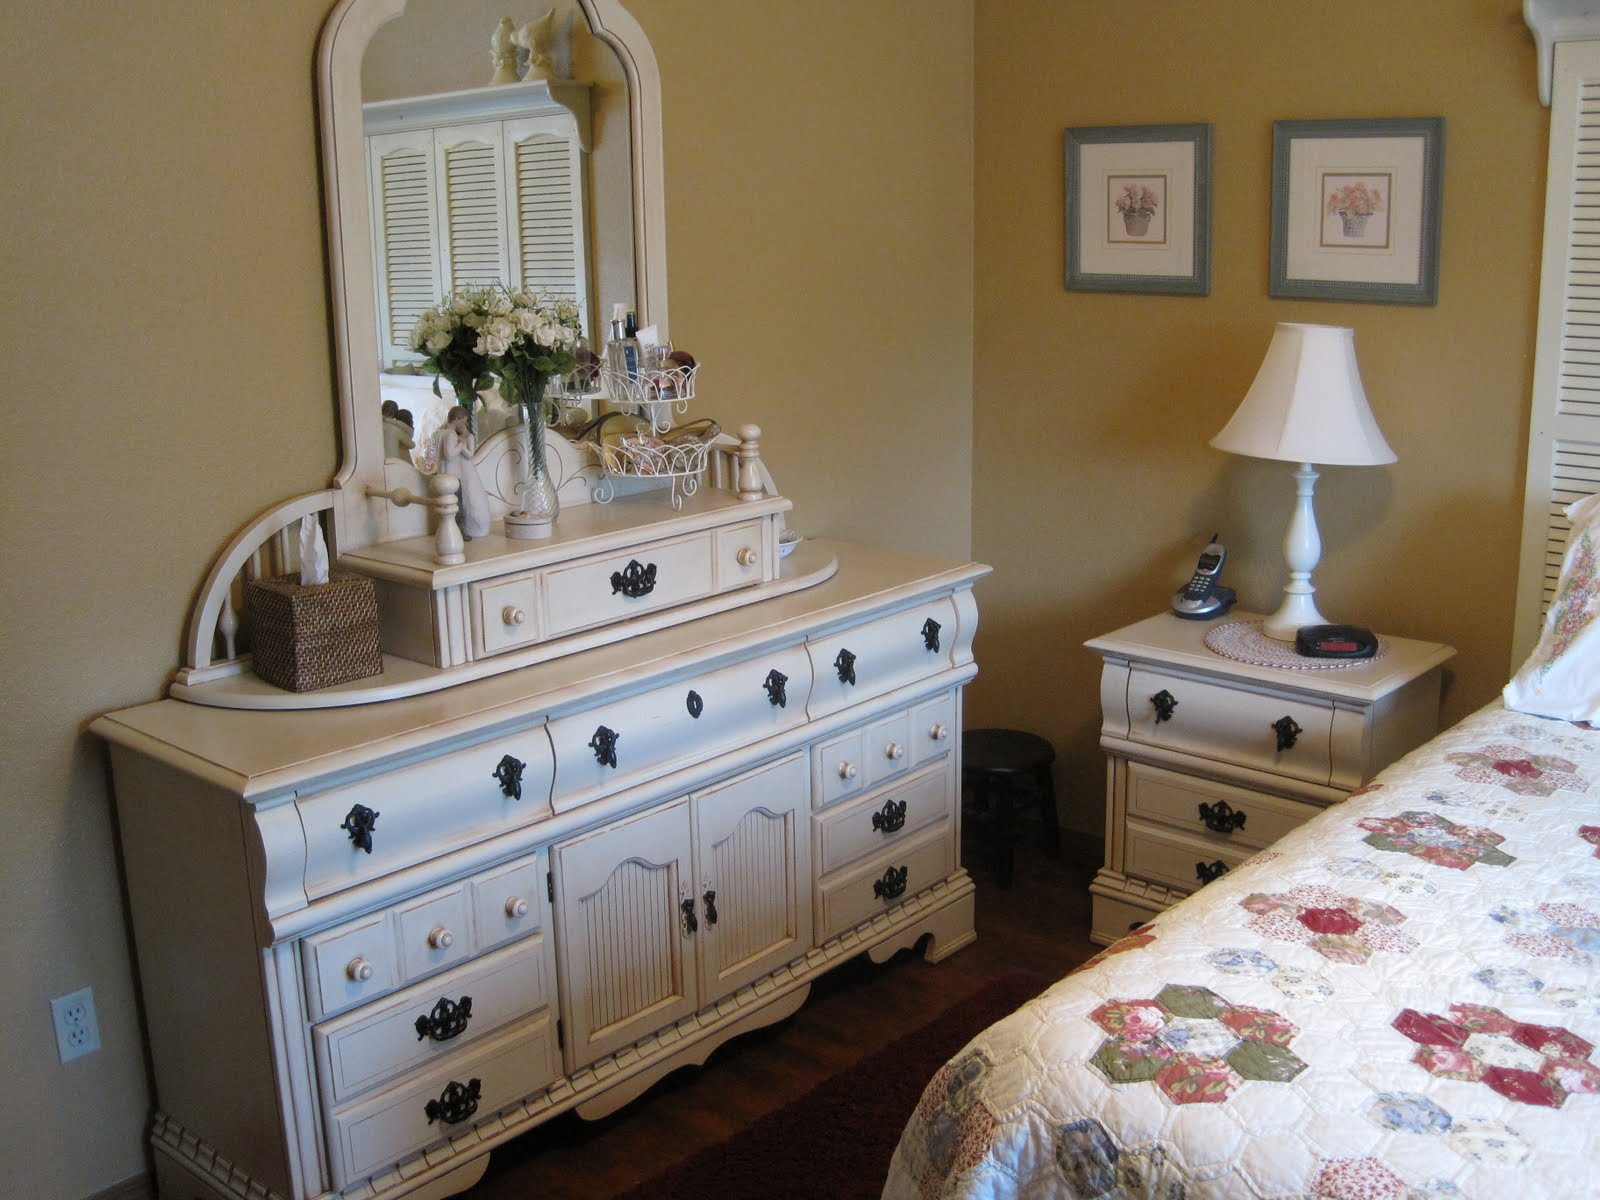 Nothing But Blue Skies Master Bath Before And After: Cherished Treasures: Before And After